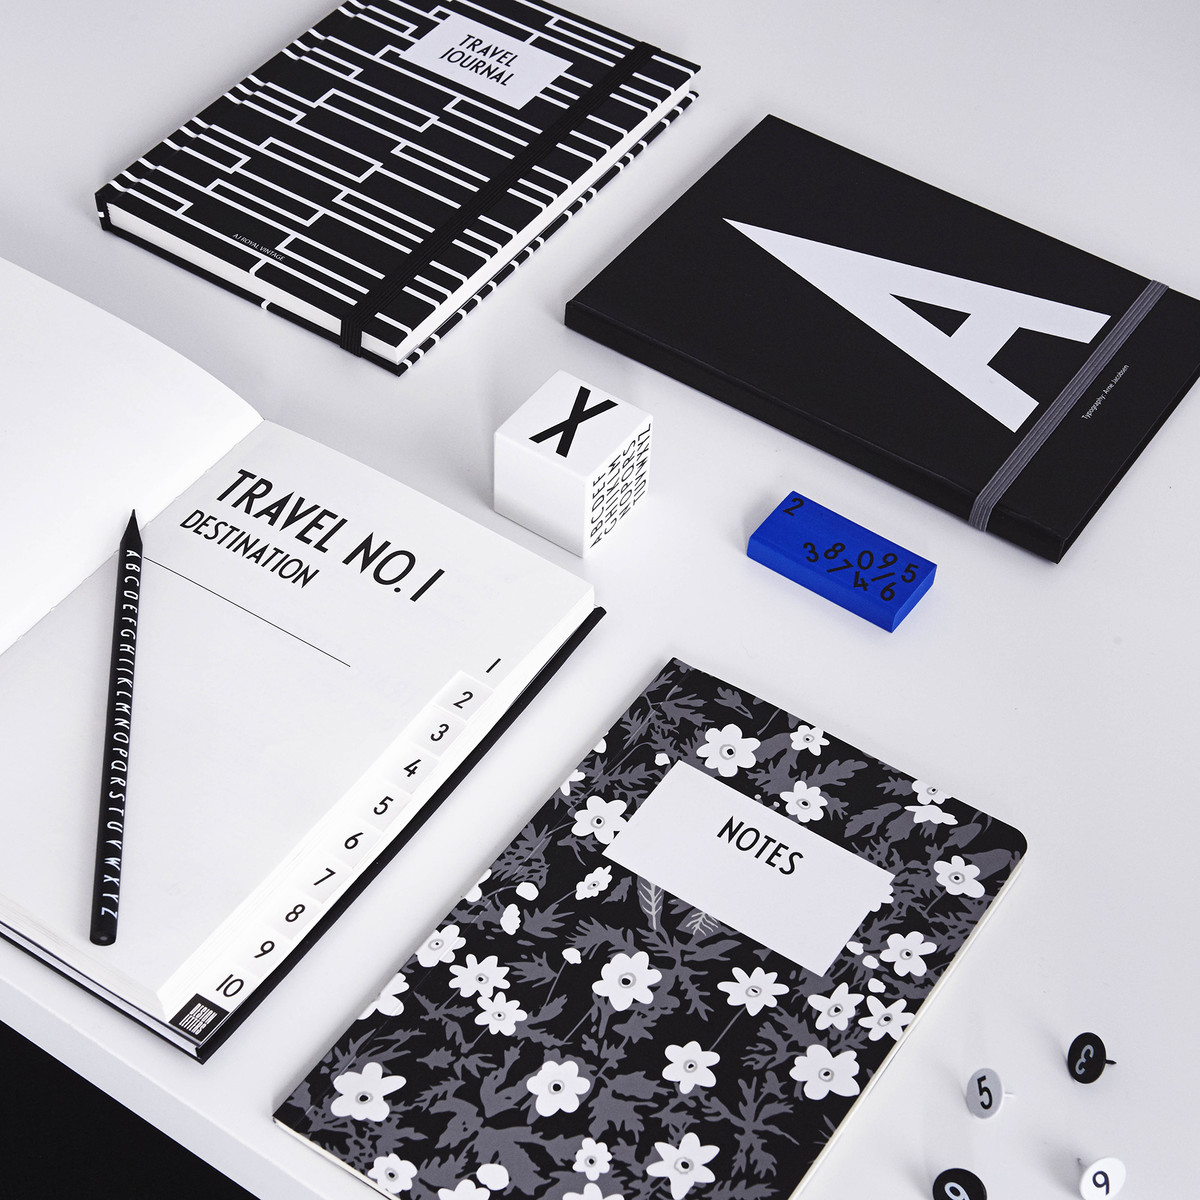 Design-Letters-Travel-Journal-Limited-edition-Ambiente-01.jpg